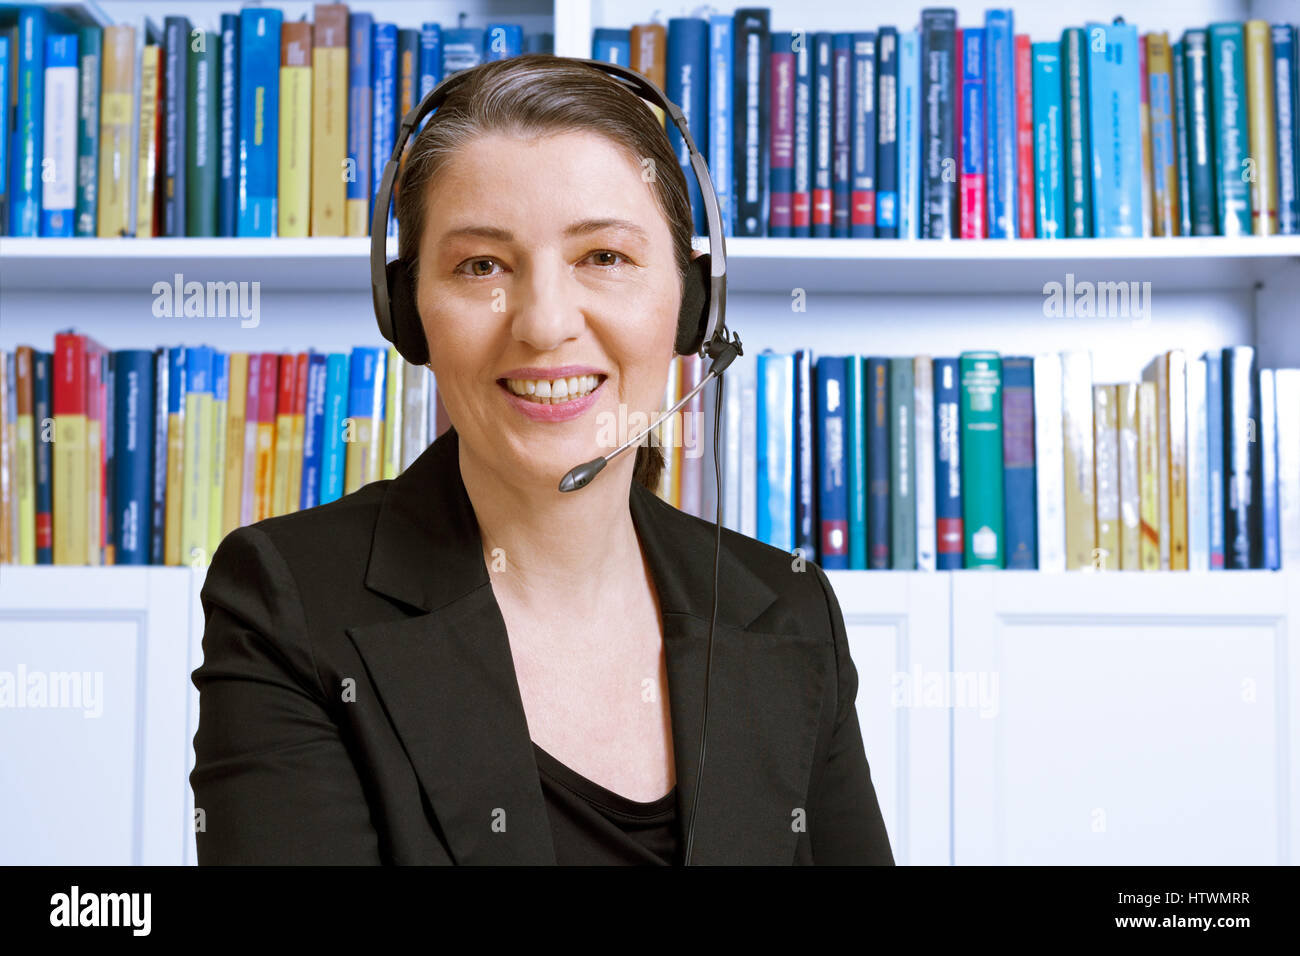 Friendly smiling middle aged woman with headset and black blazer in an office with lots of books, lawyer or accountant, - Stock Image